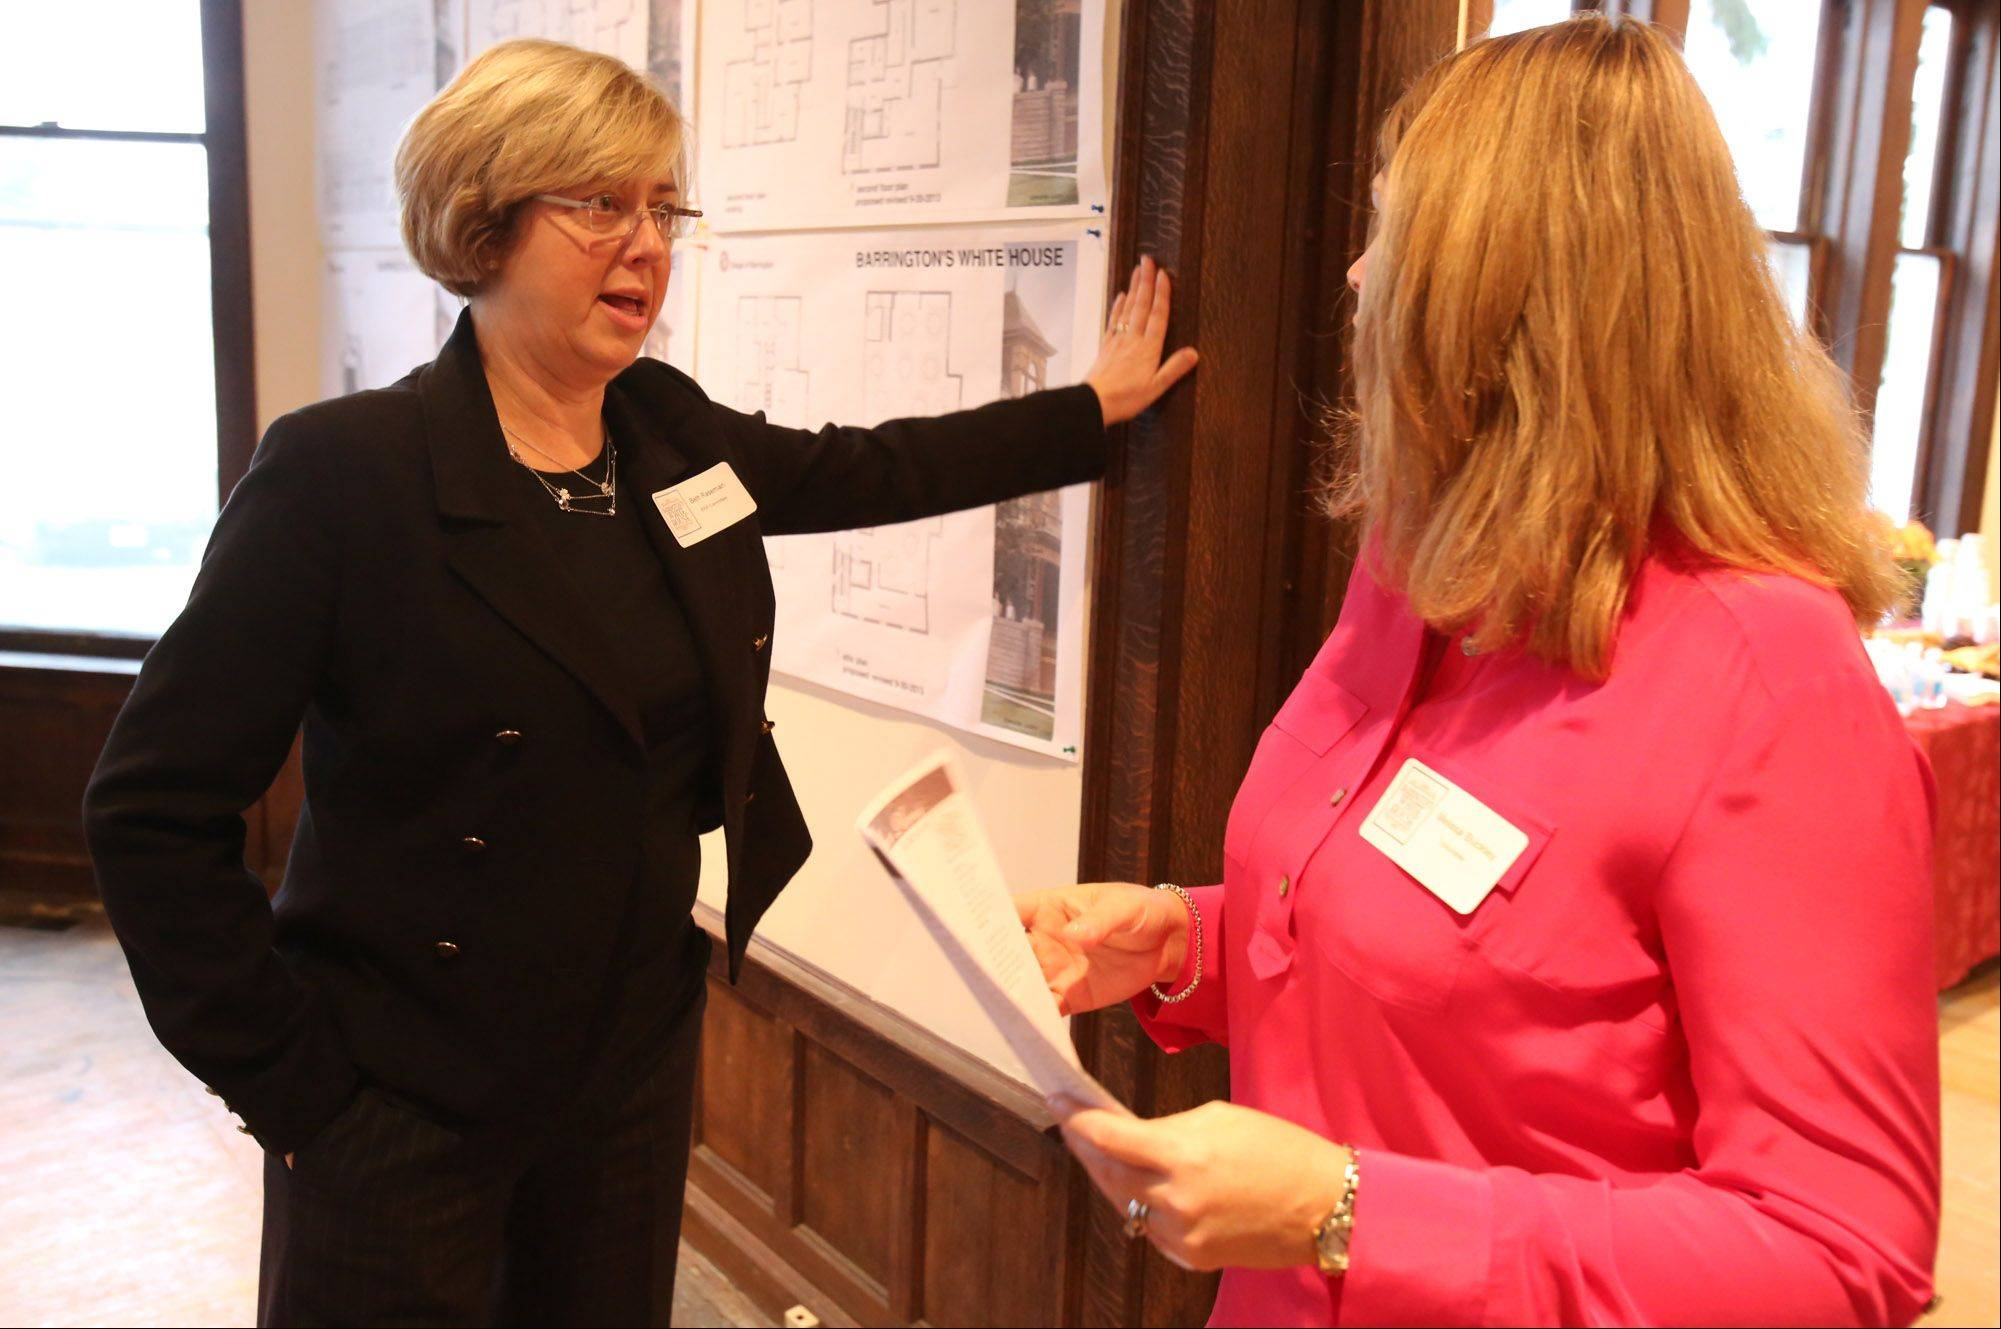 Beth Raseman, a Barrington White House board member, discusses woodwork with Melissa Buckley of Barrington during a community open house Saturday.